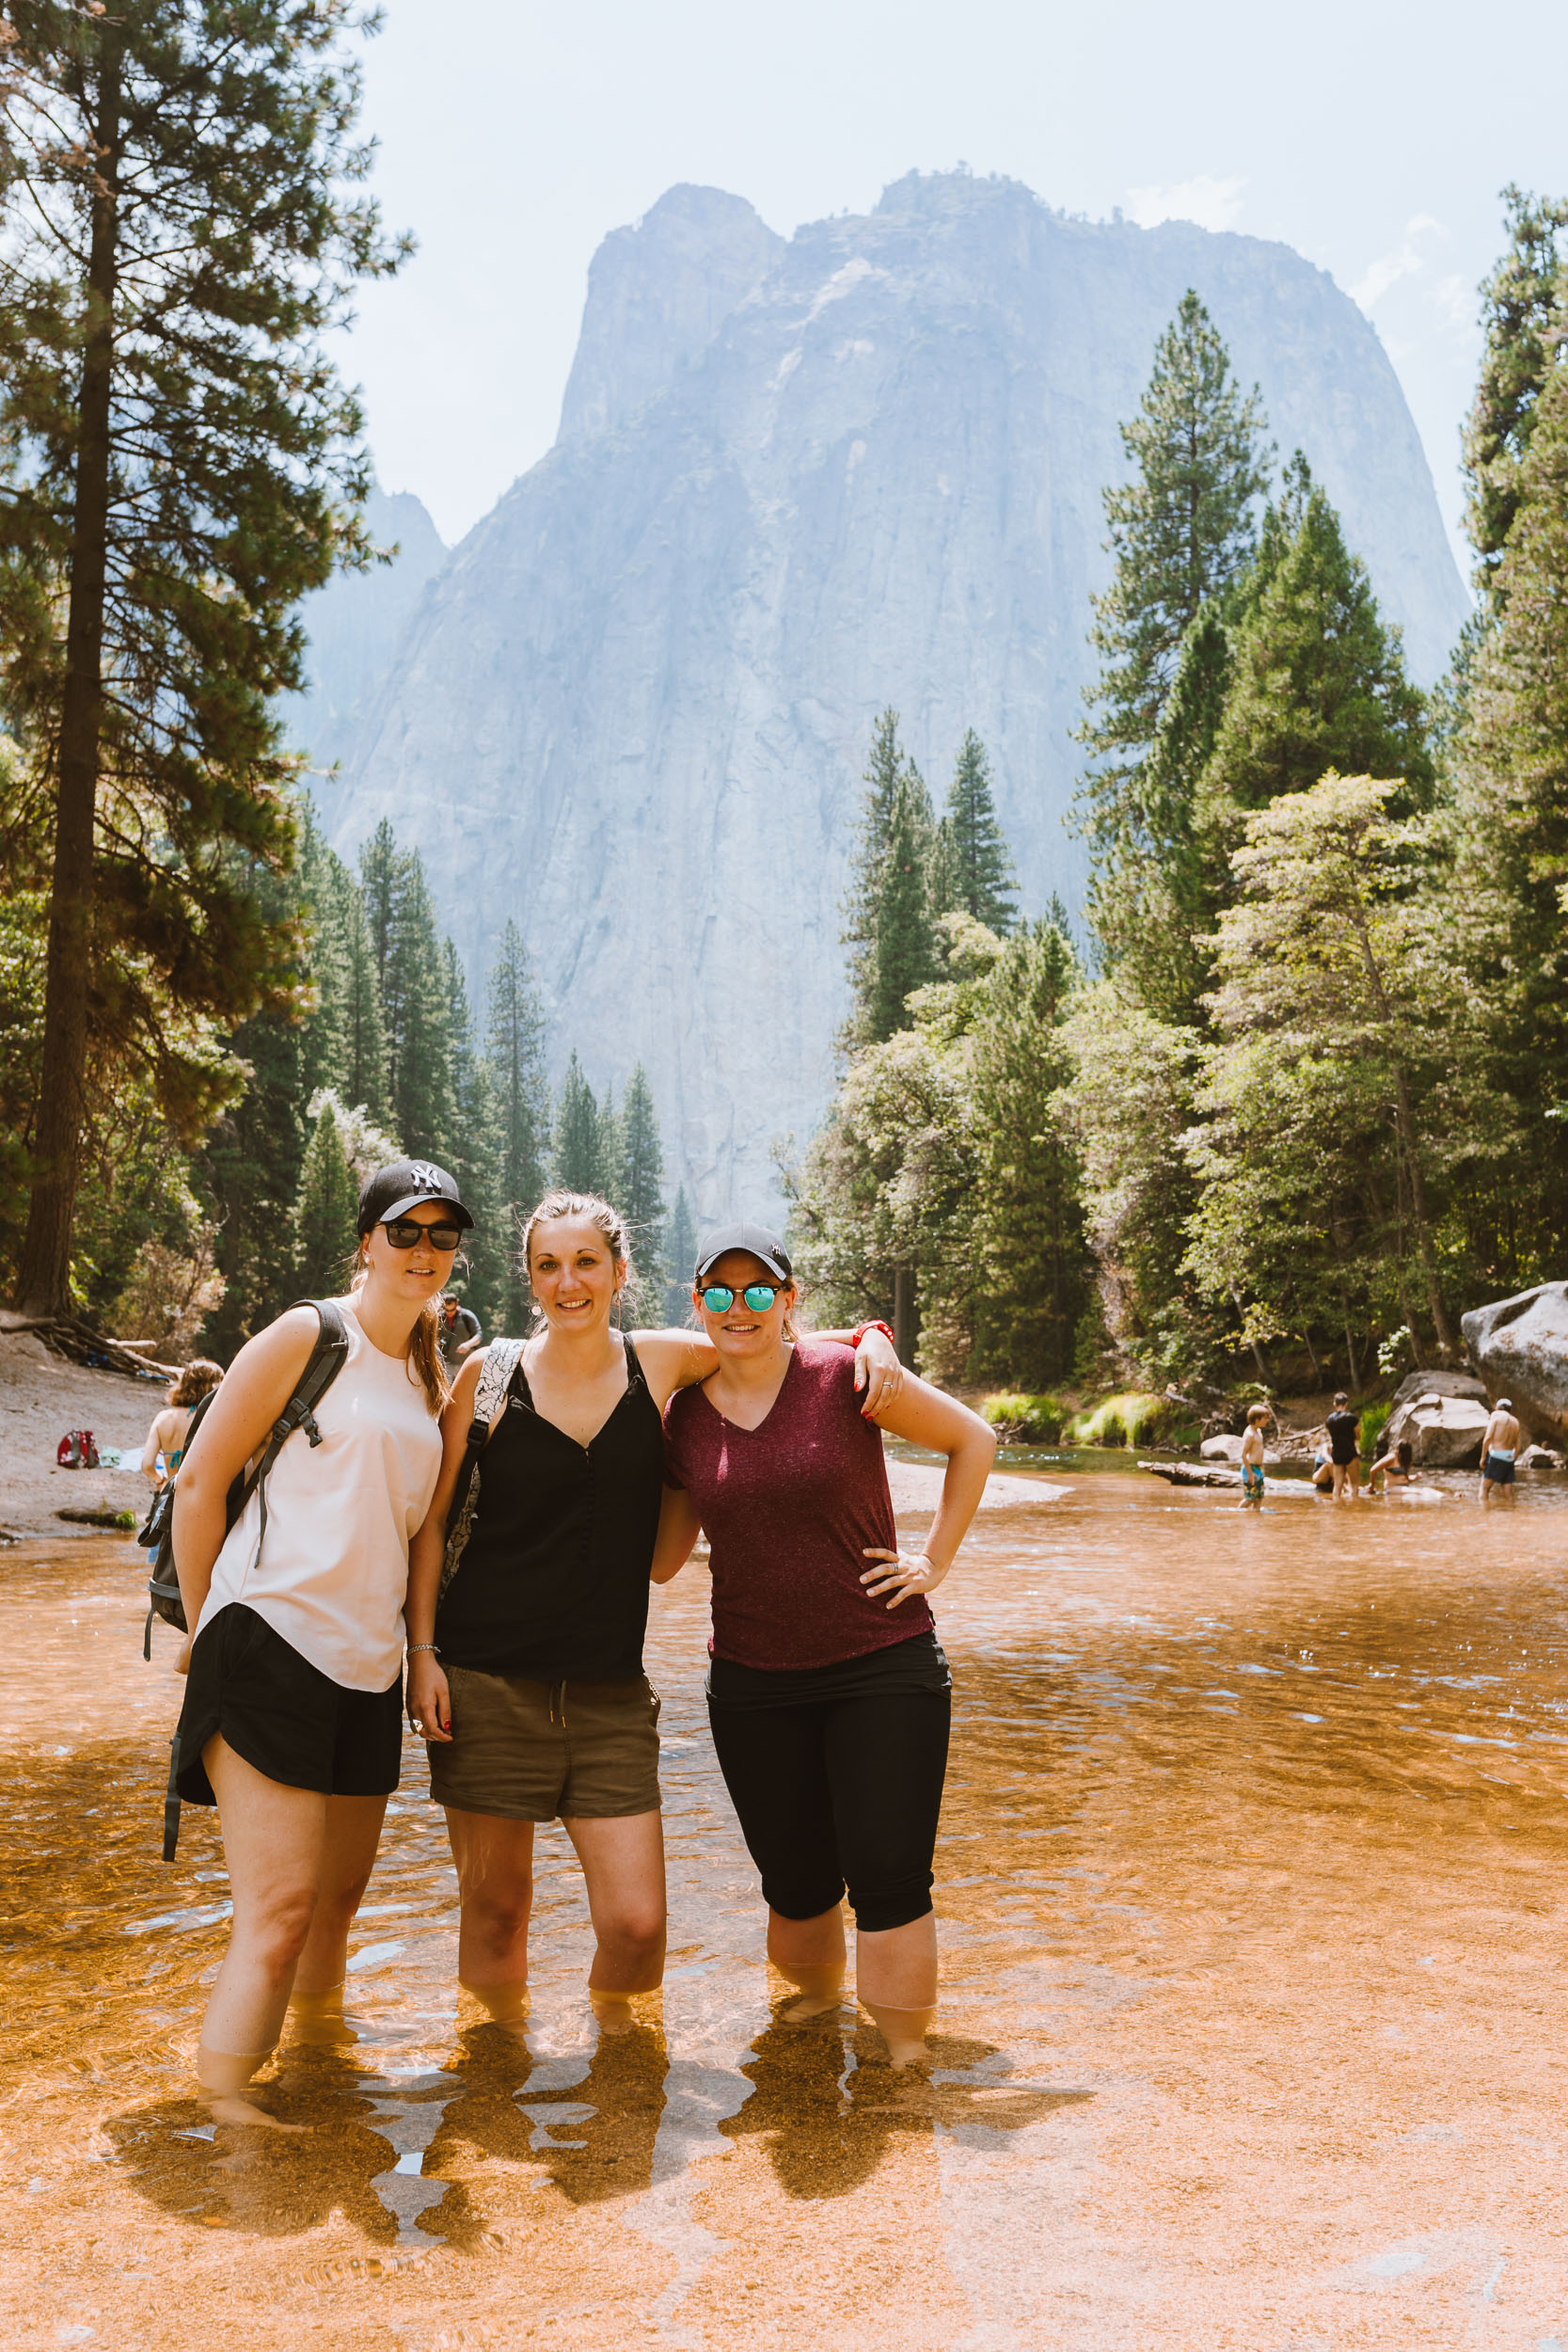 20160820_20160821_YOSEMITE_NATIONAL_PARK-6.jpg